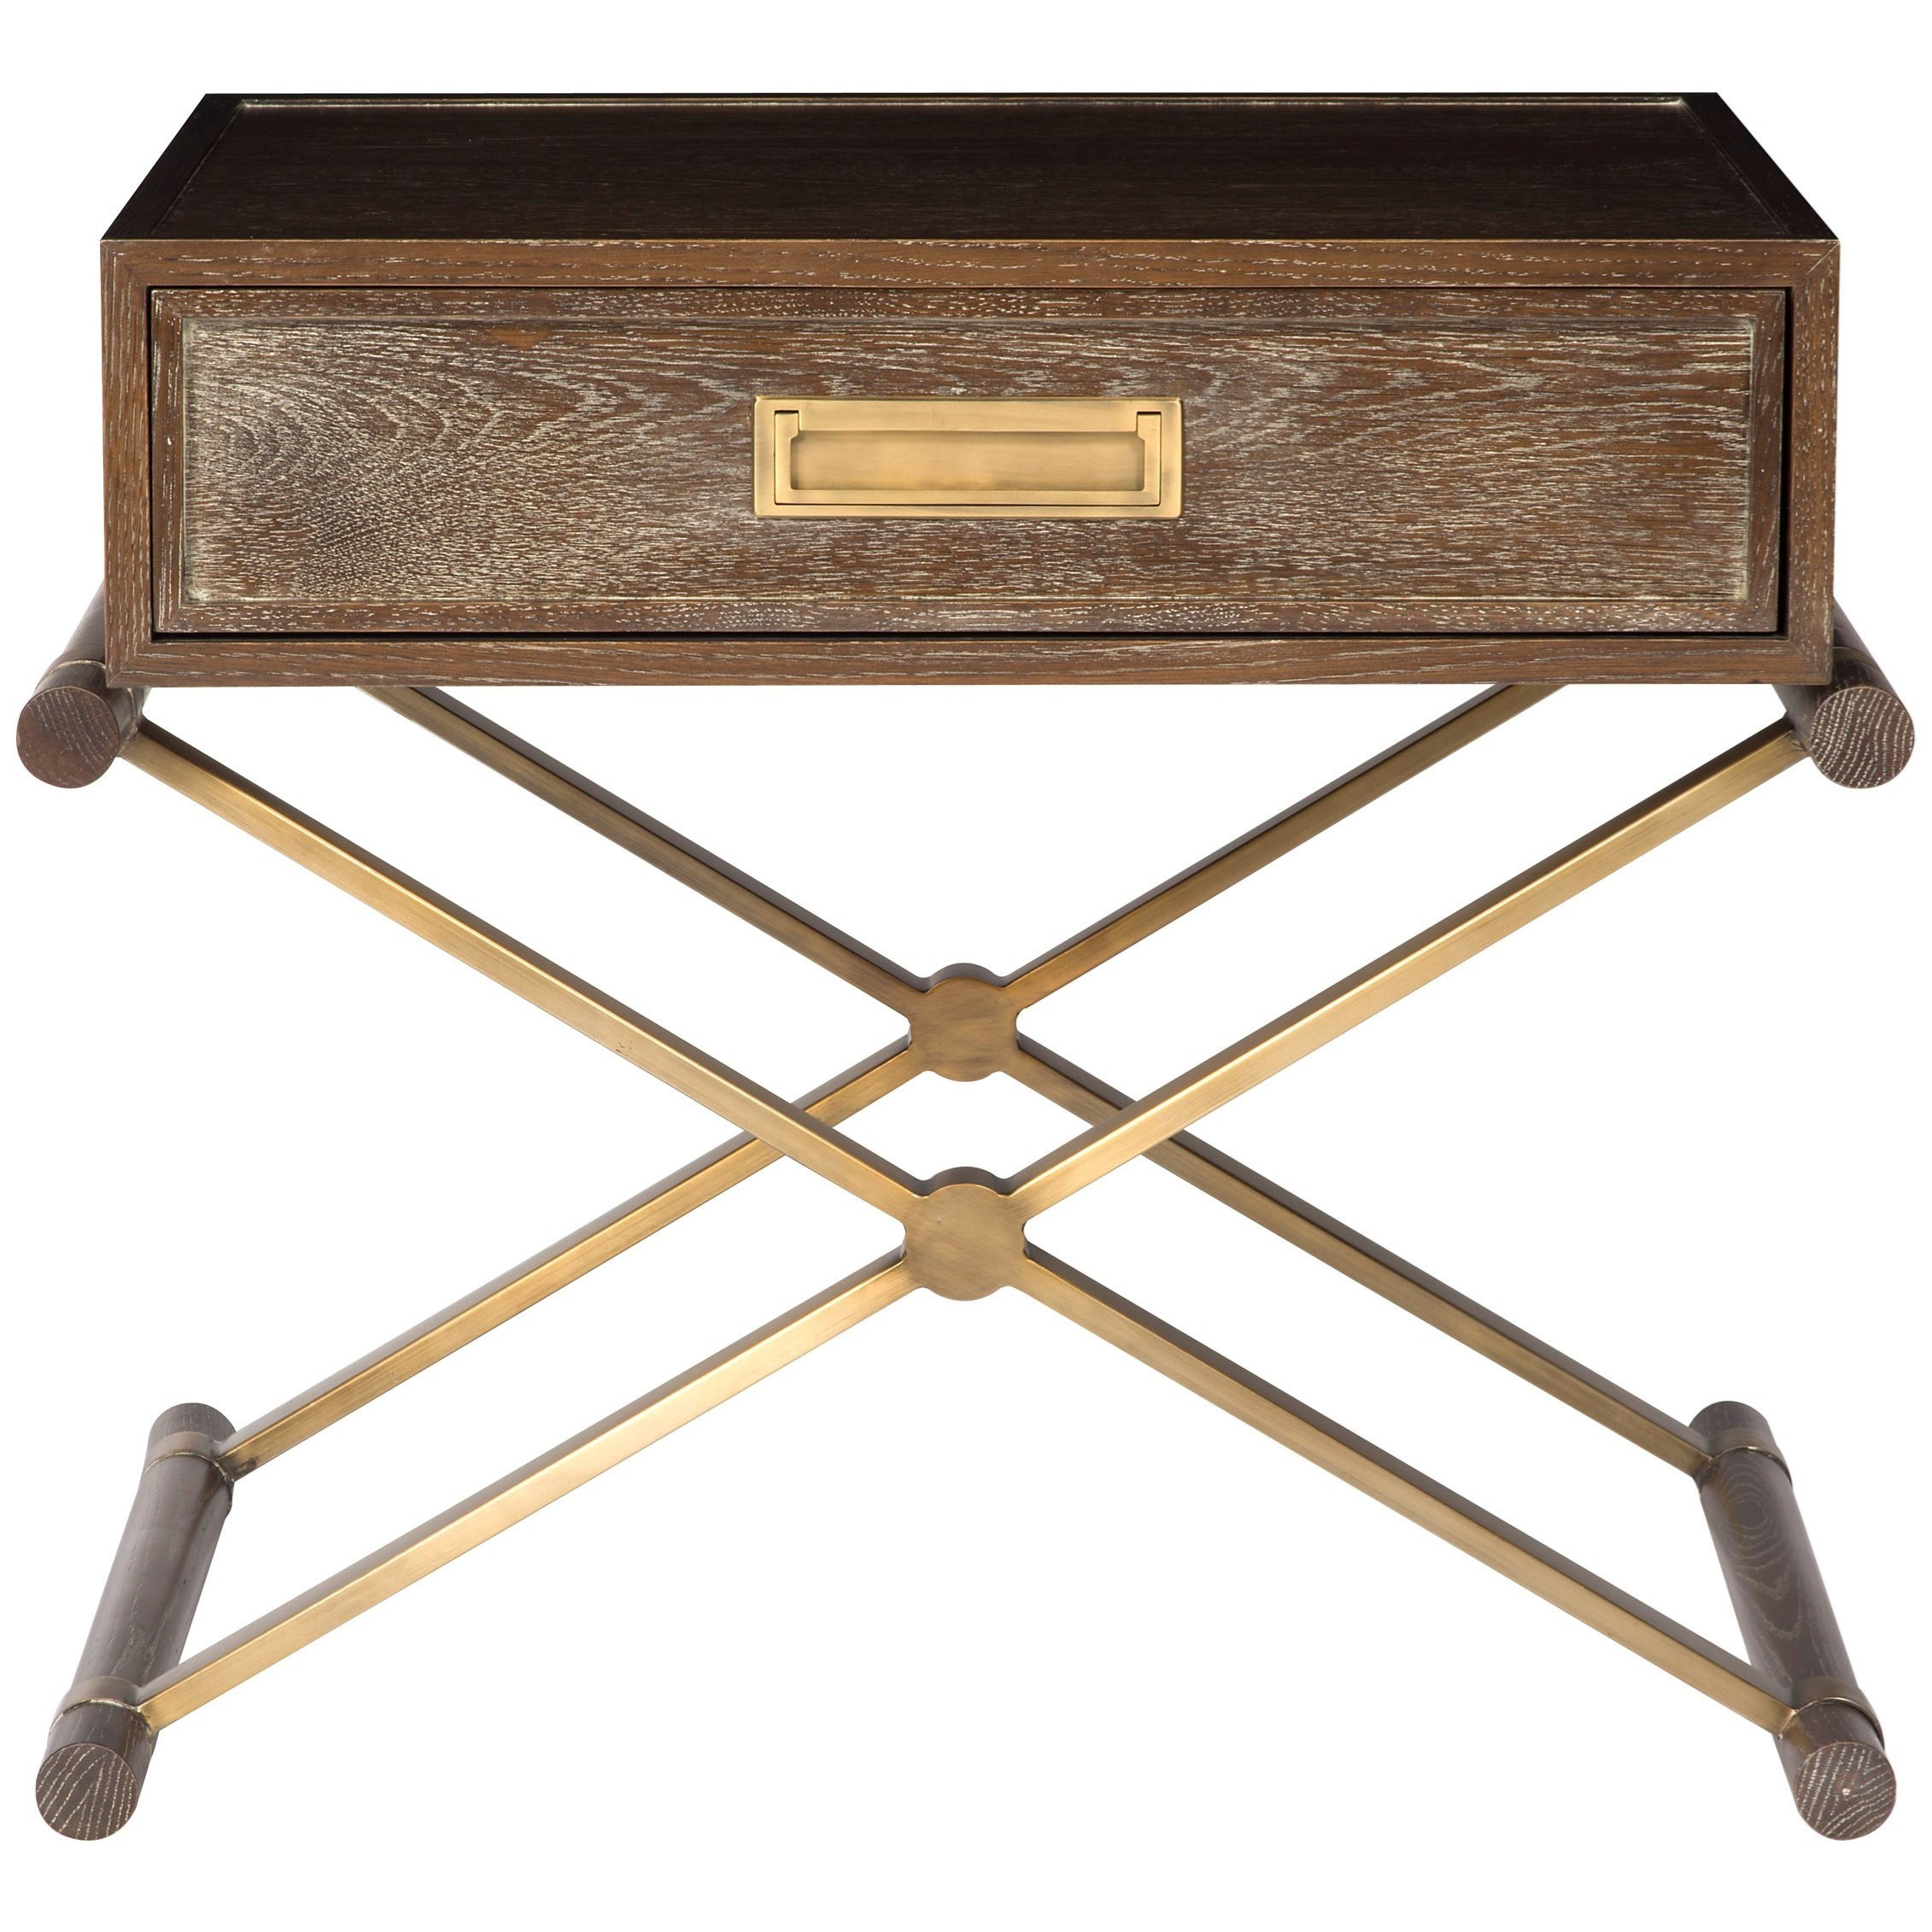 Lafayette by Thom Filicia Home Side Table Nightstand by Vanguard Furniture at Baer's Furniture